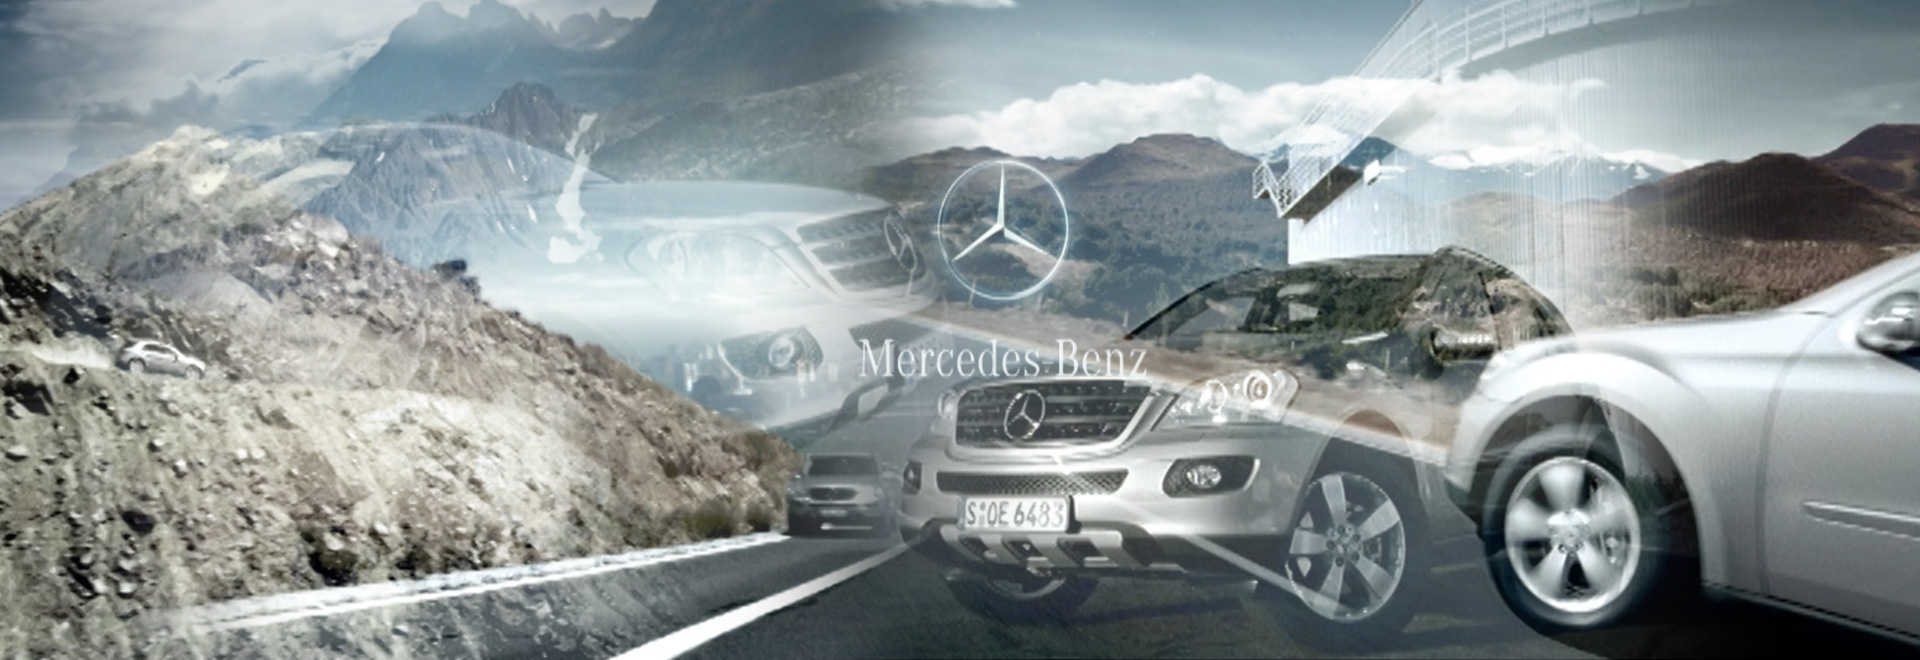 js-filmproduction-postproduction-imagefilm-mercedes-benz-m-klasse-header